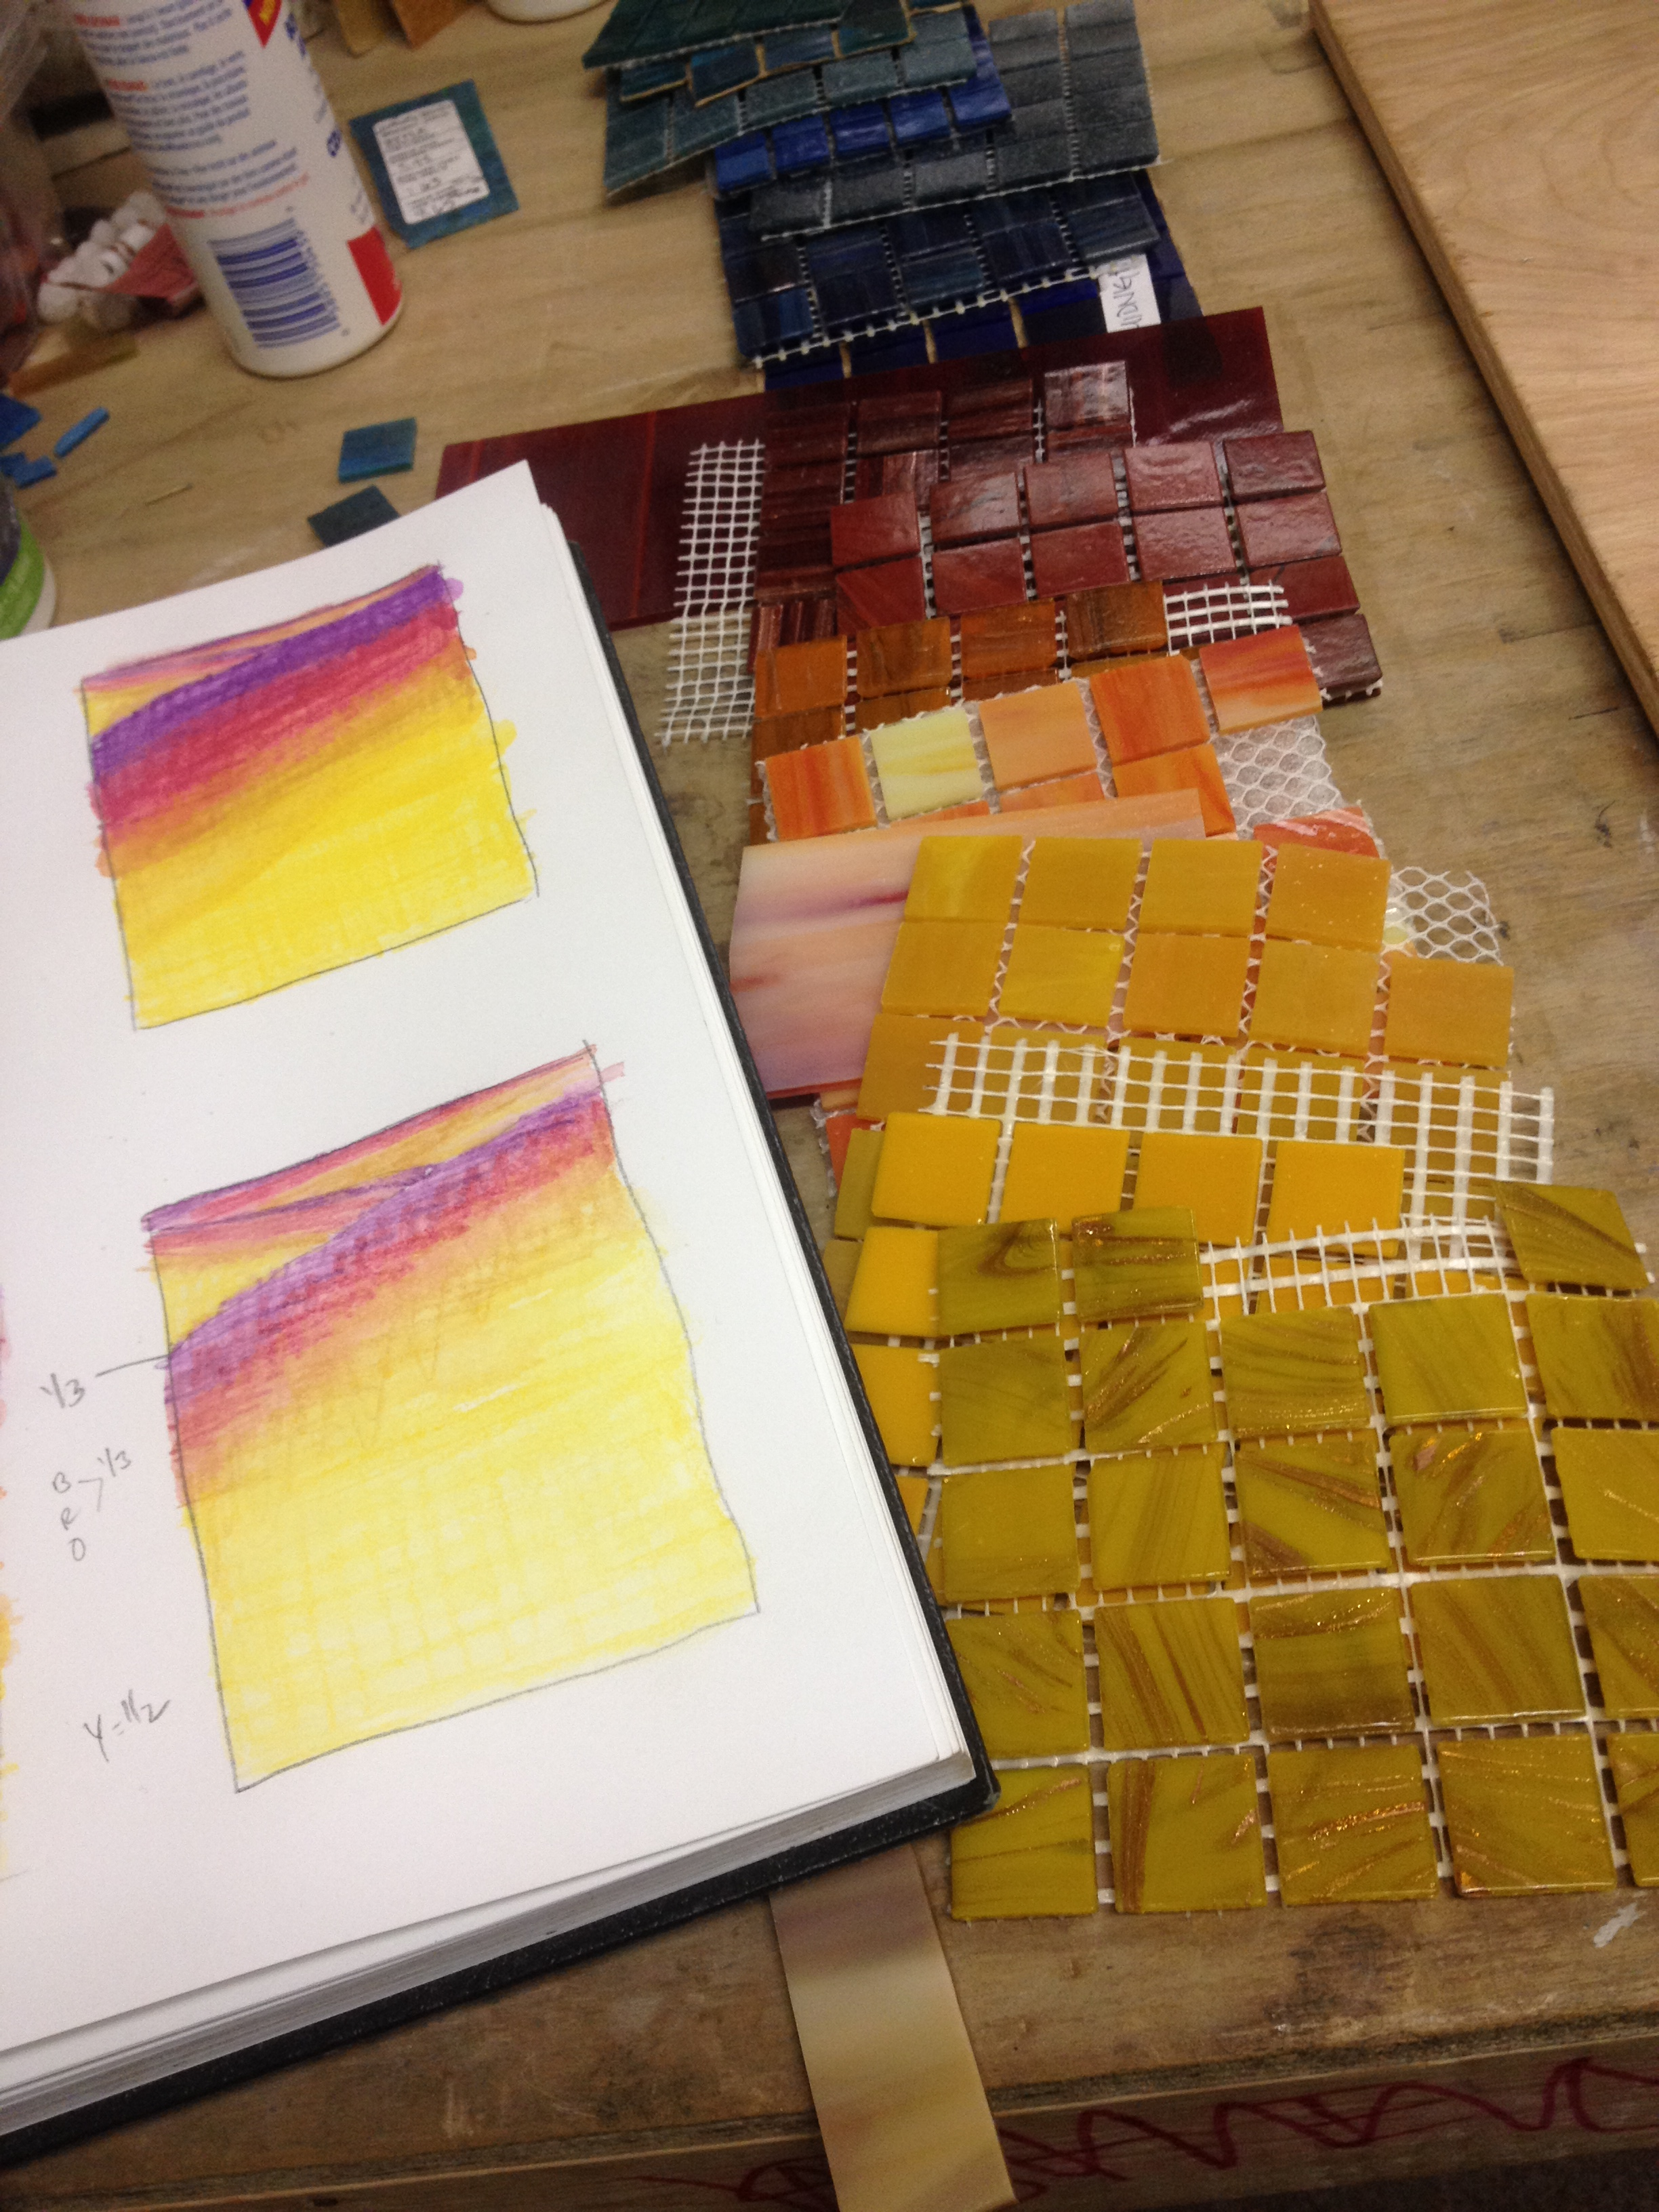 Sketching and selecting material for a mosaic commission.